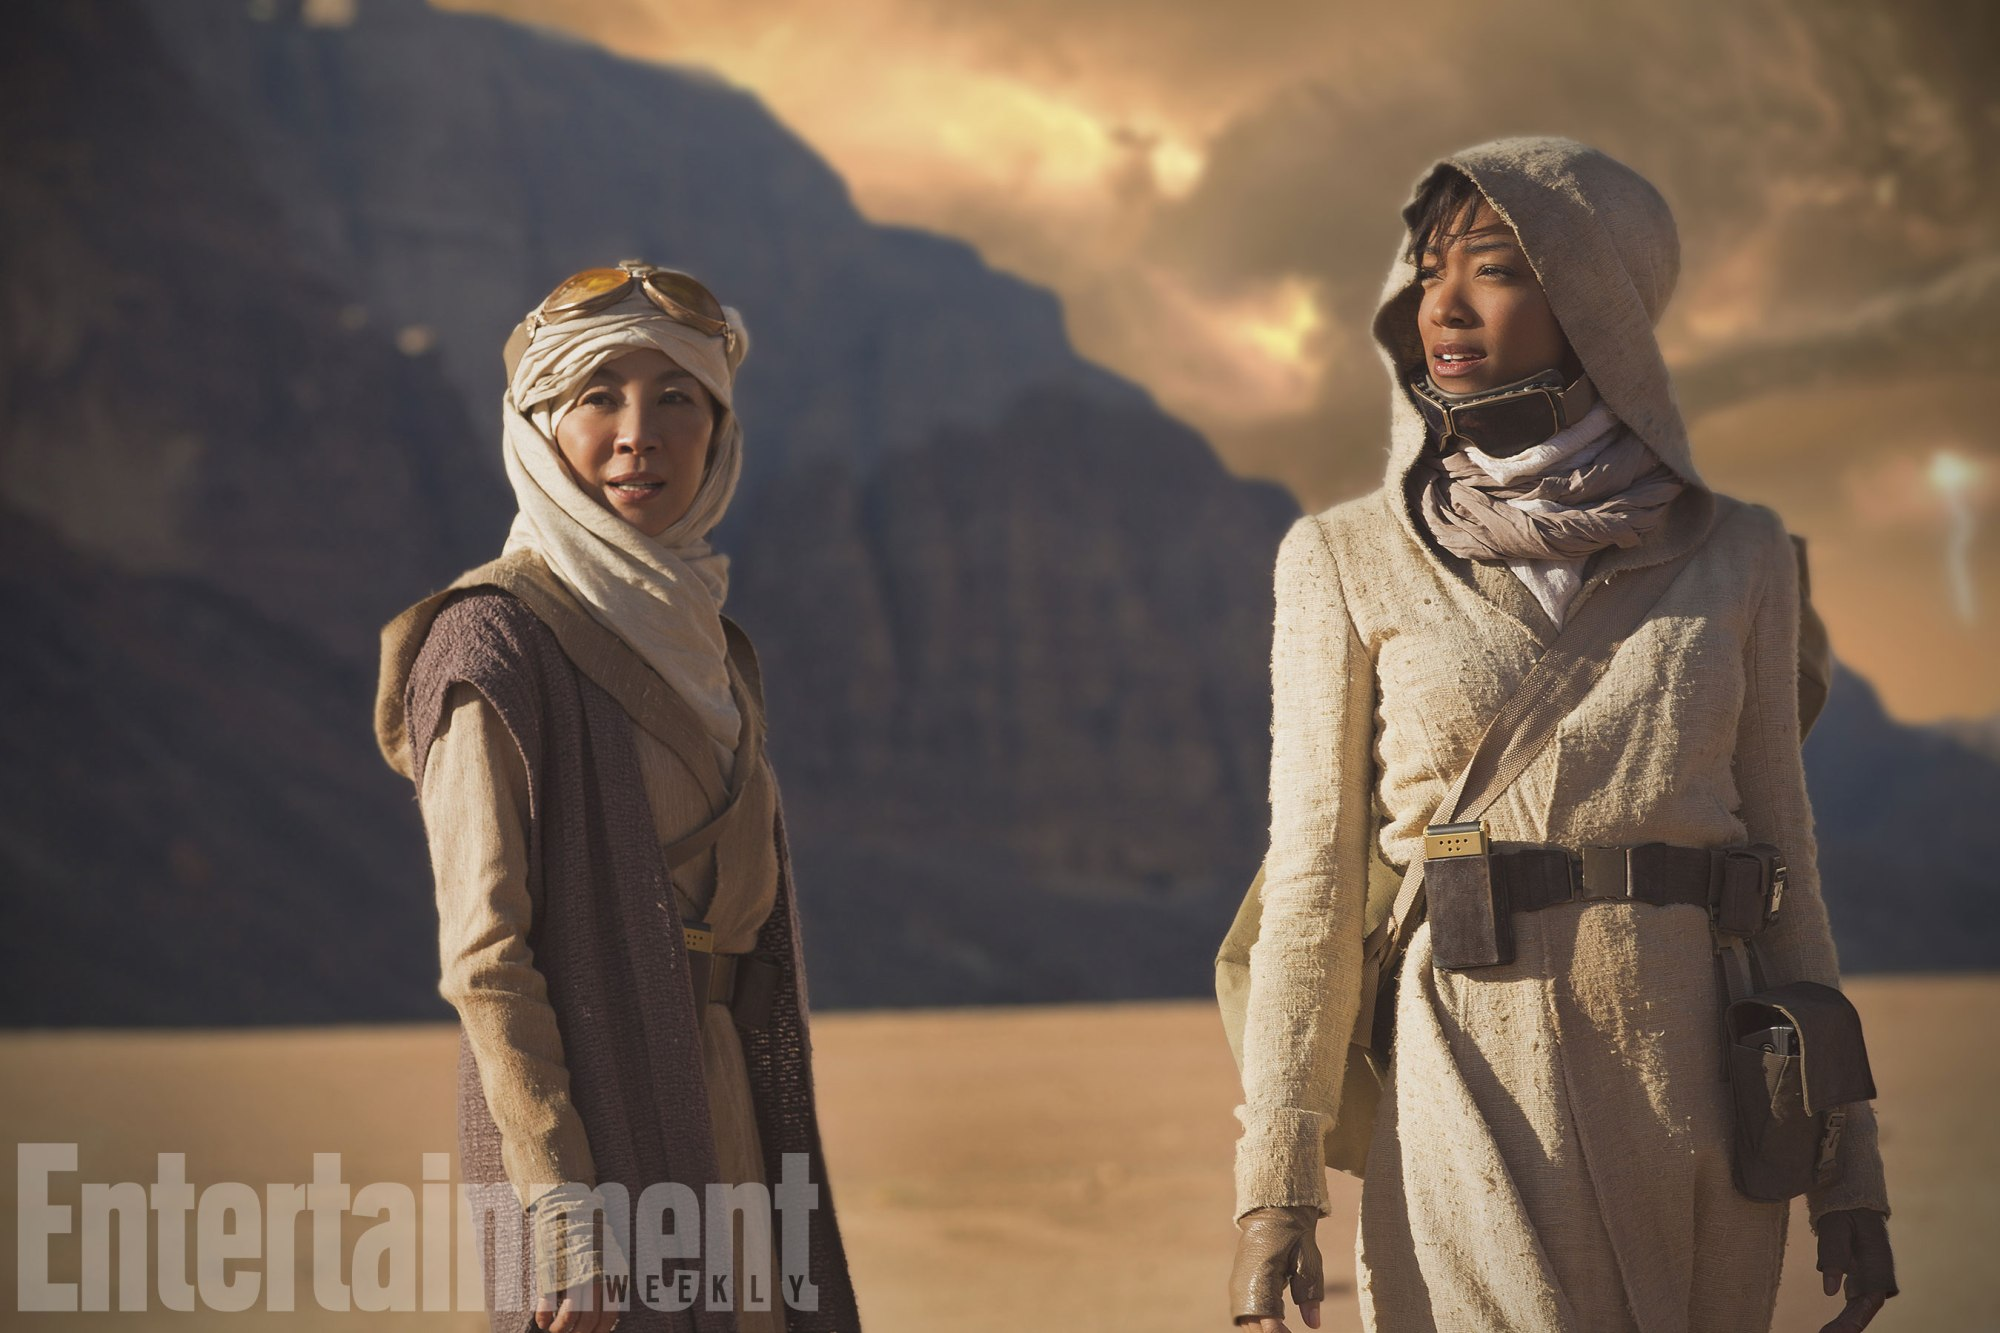 First Officer Michael Burnham Beams Down To A Desert Planet In Official Star Trek: Discovery Pic